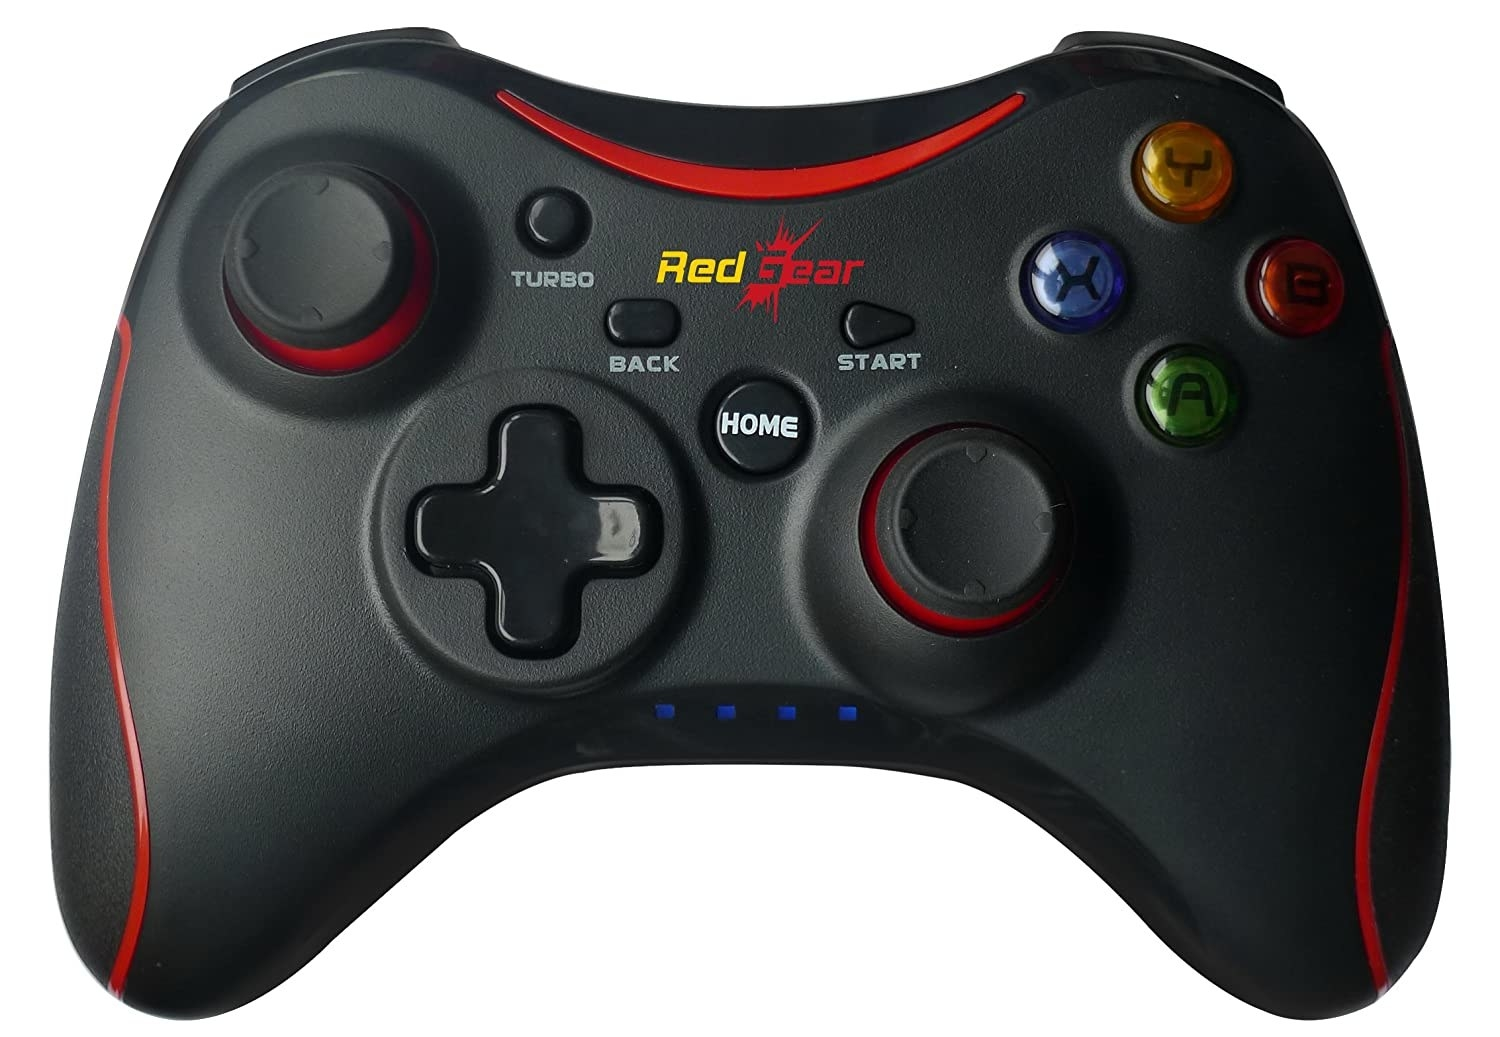 A black and red Redgear Pro Wireless Gamepad